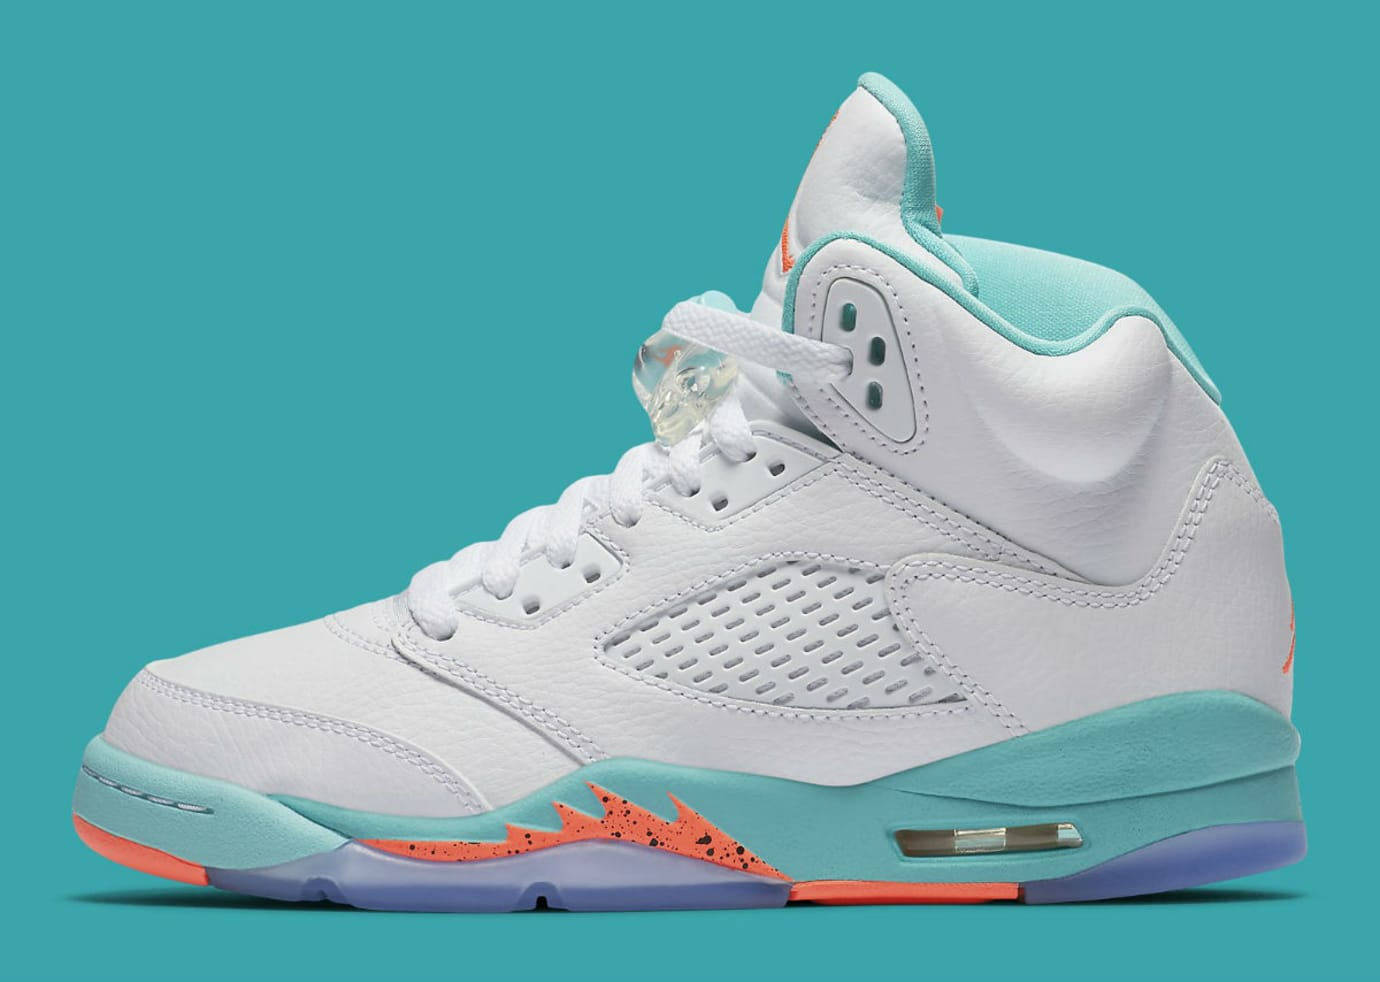 sports shoes 9d0f5 2fa10 Air Jordan 5 V GS White Crimson Pulse Light Aqua Release Date 440892-100  Profile Image via Nike ...